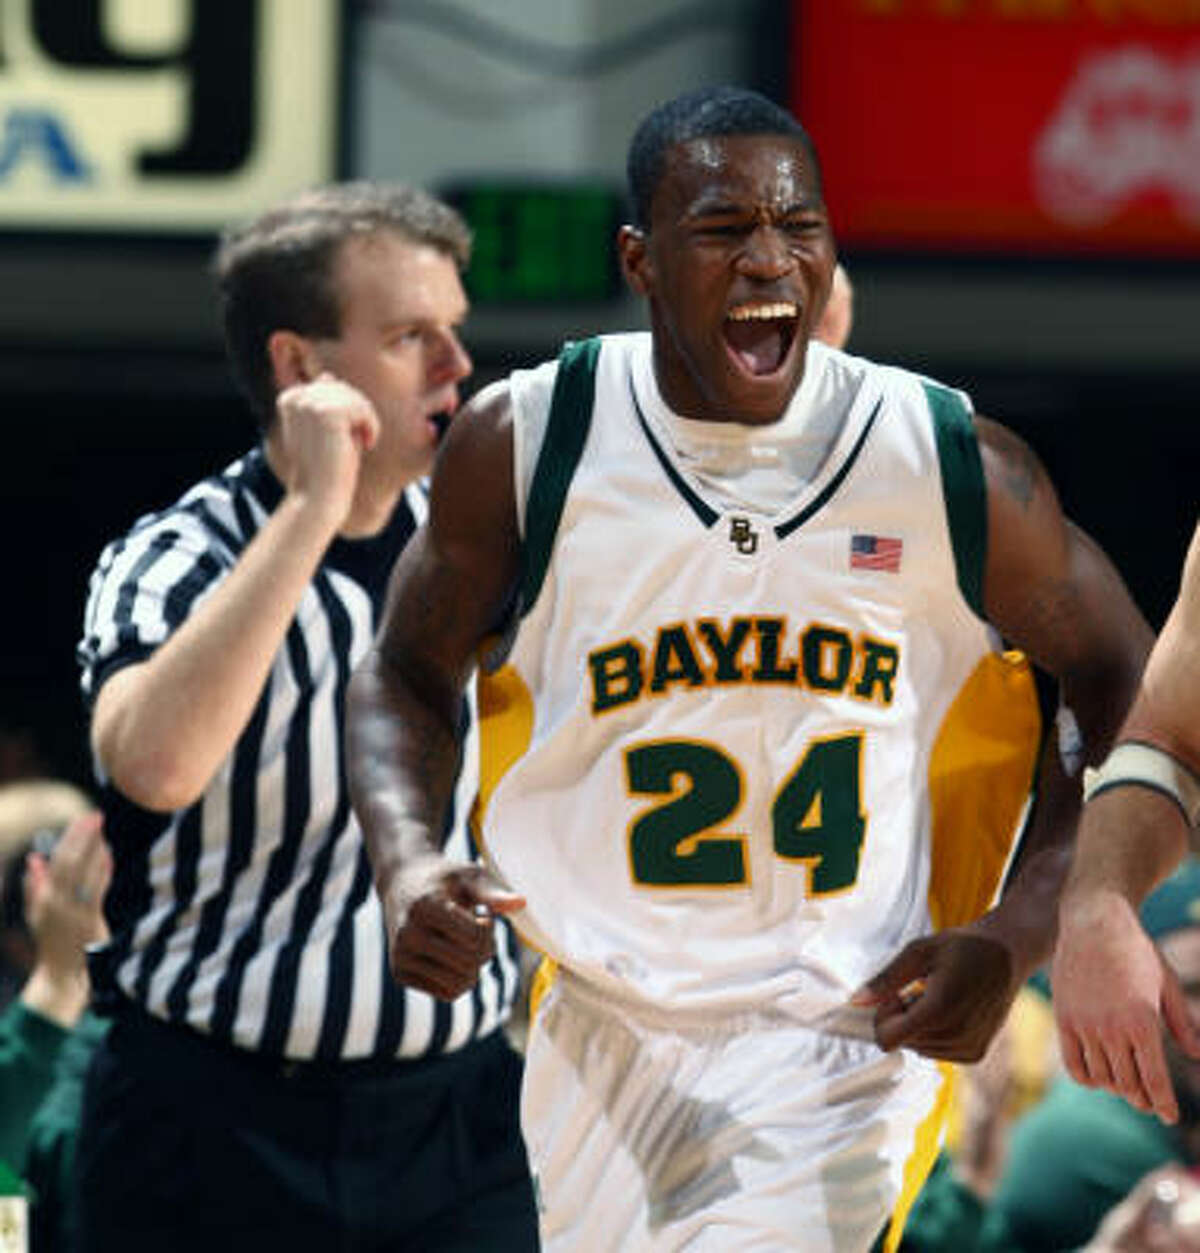 LaceDarius Dunn had a run of 11 straight points for Baylor after the break and finished with 20.